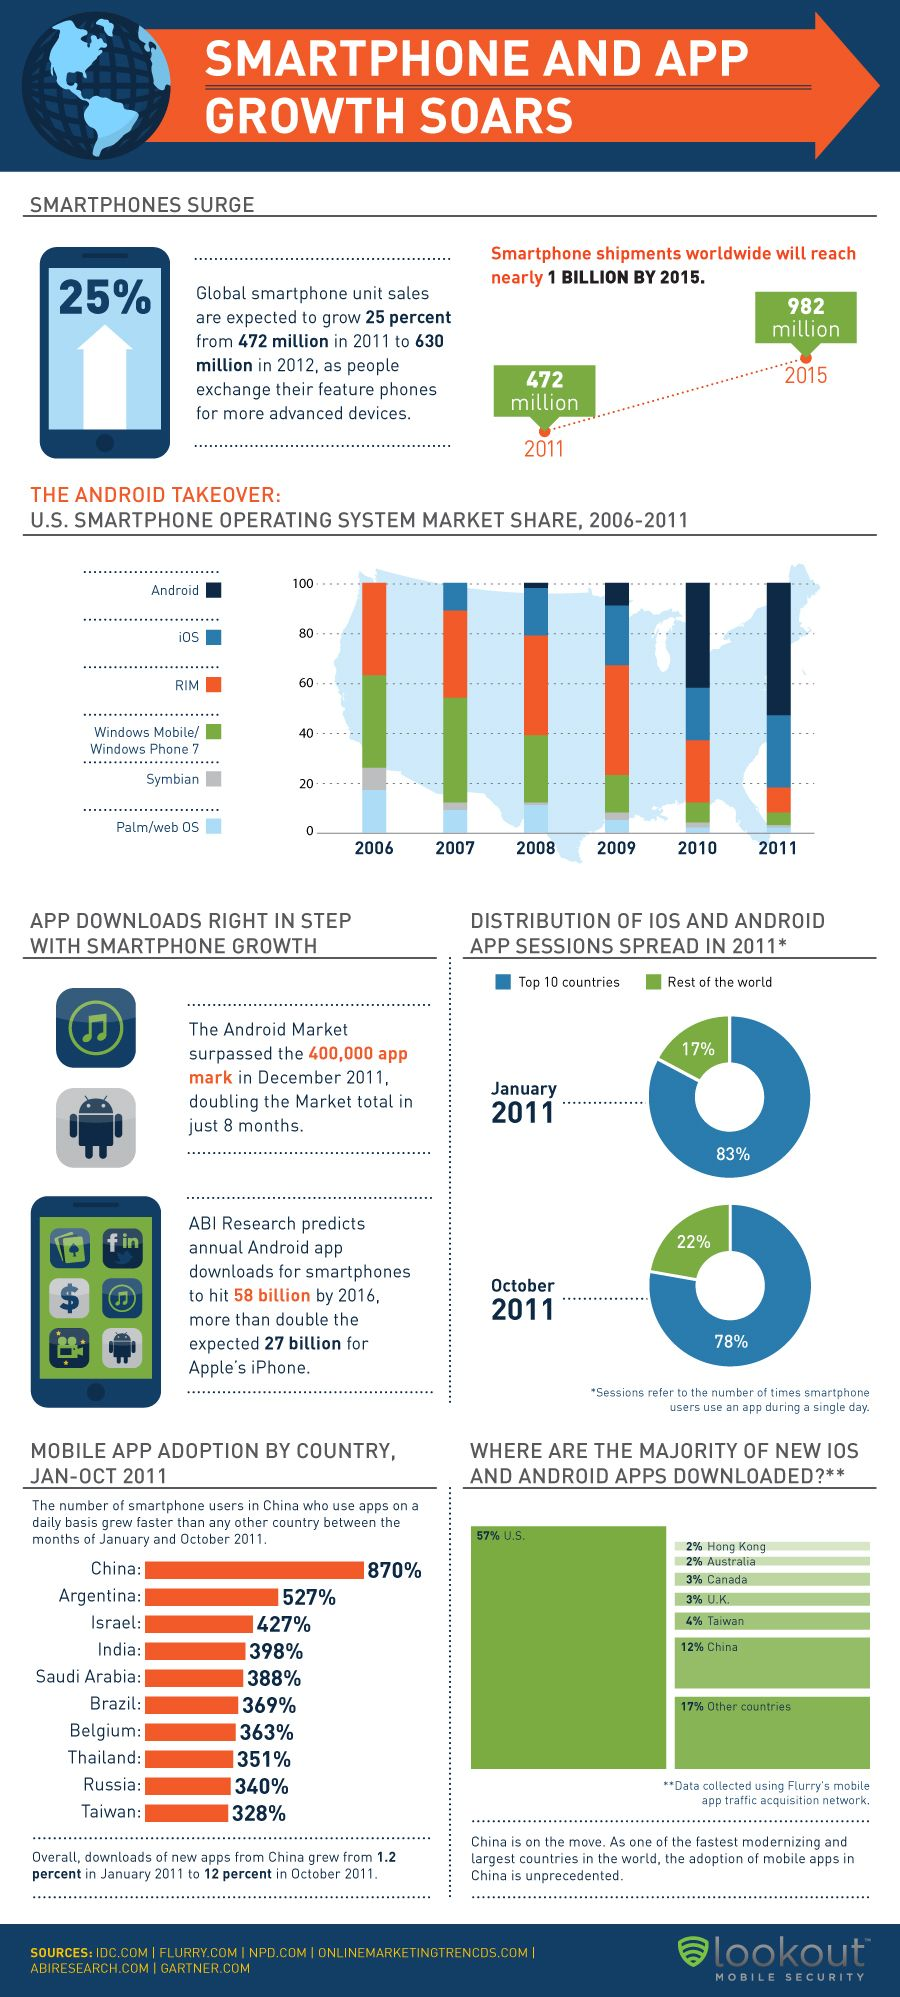 Smartphone and APP Growth Soars (Lookout Infographic